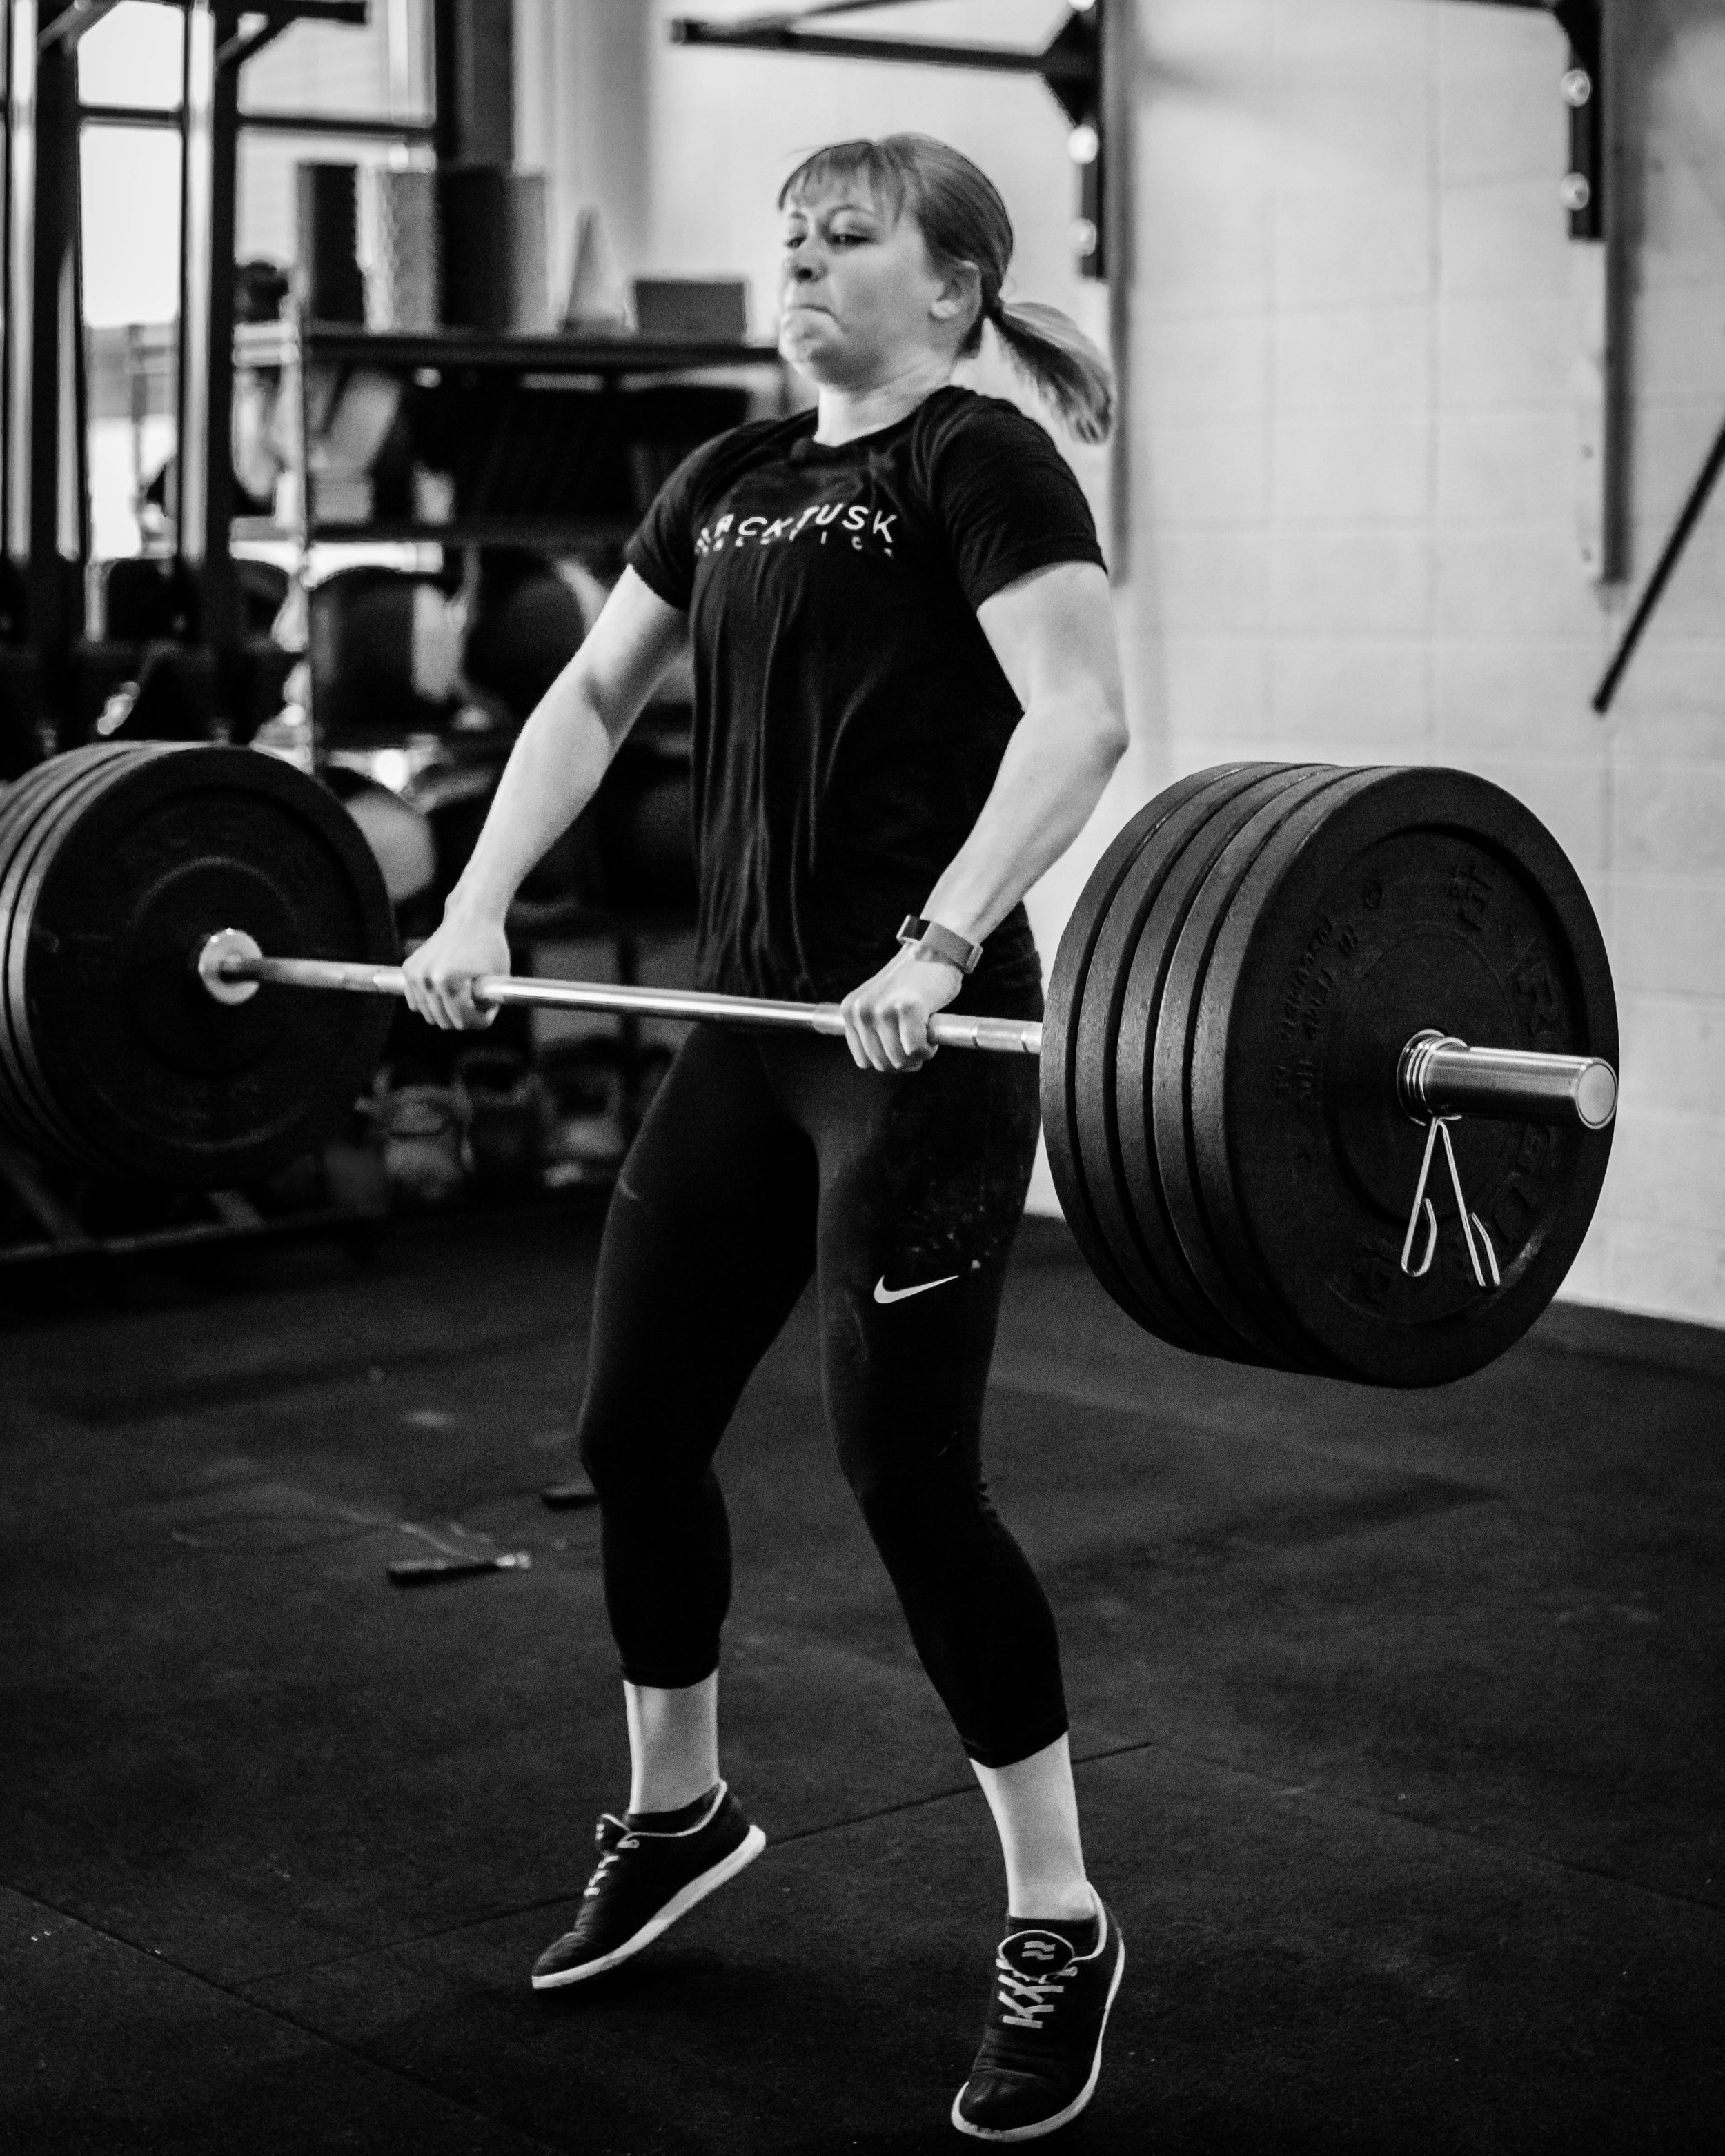 One of our athletes, Lauren. She currently wears multiple hats, including new graduate, server and volunteer. Lauren recently ran her longest distance ever of 14.7km, PR'd her clean at 135# and achieved her goal of unassisted pull ups!